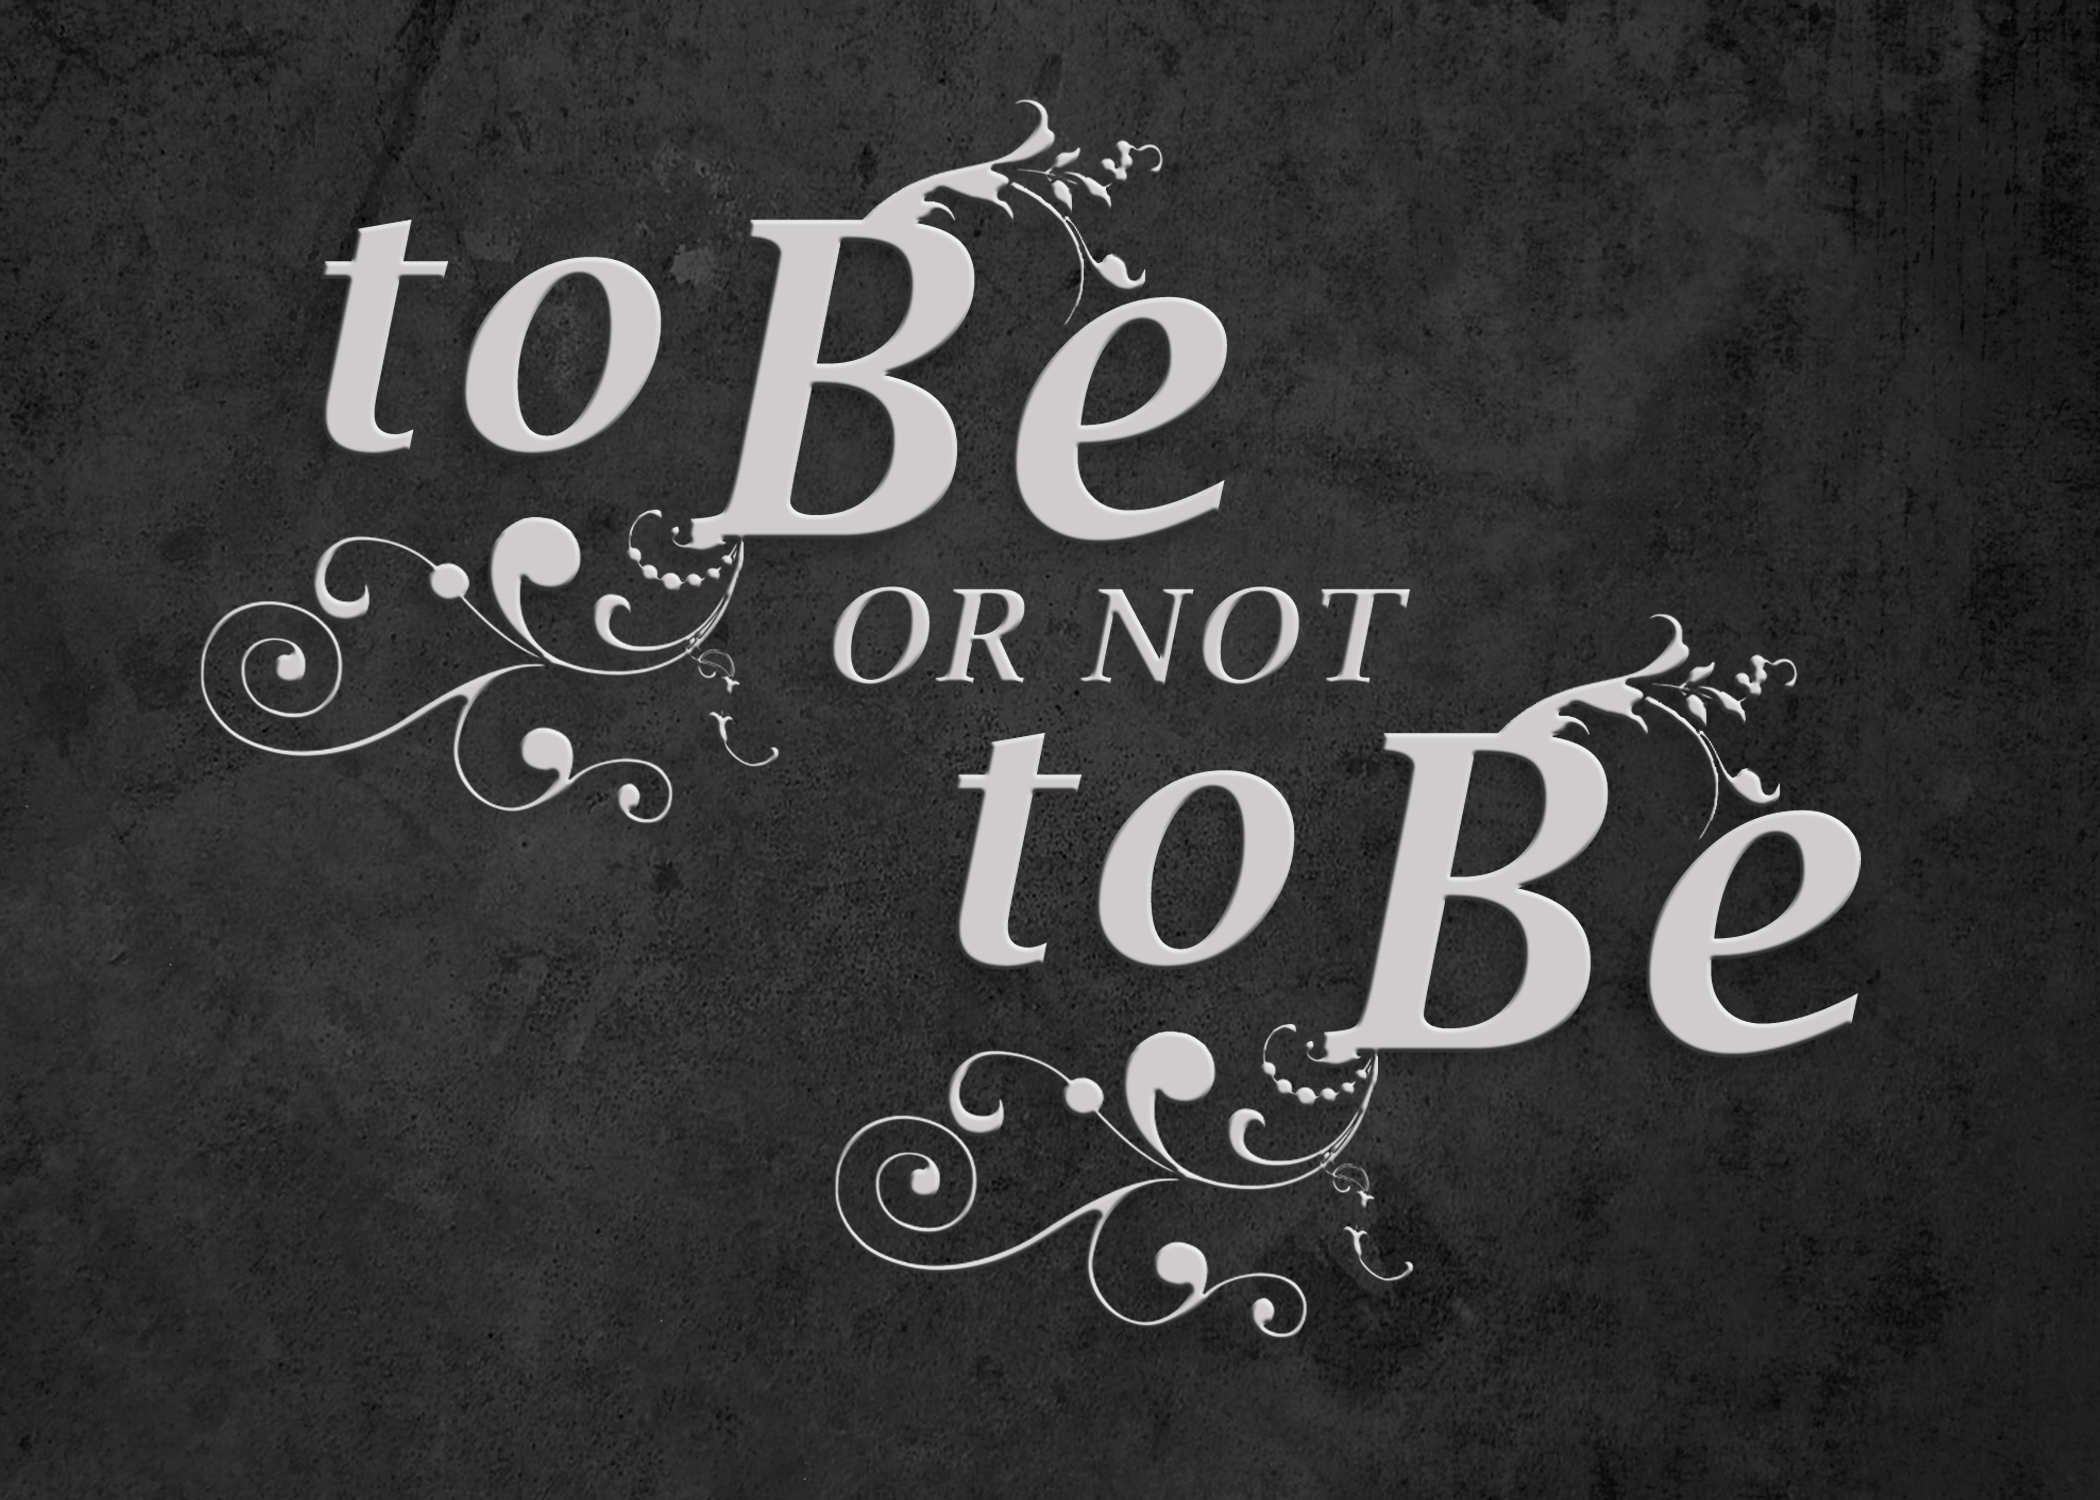 to be or not to be essays To be or not to be essay examples 12 total results the most notable line of hamlet 1,245 words 3 pages the translation of to be or not to be 293 words 1 page.